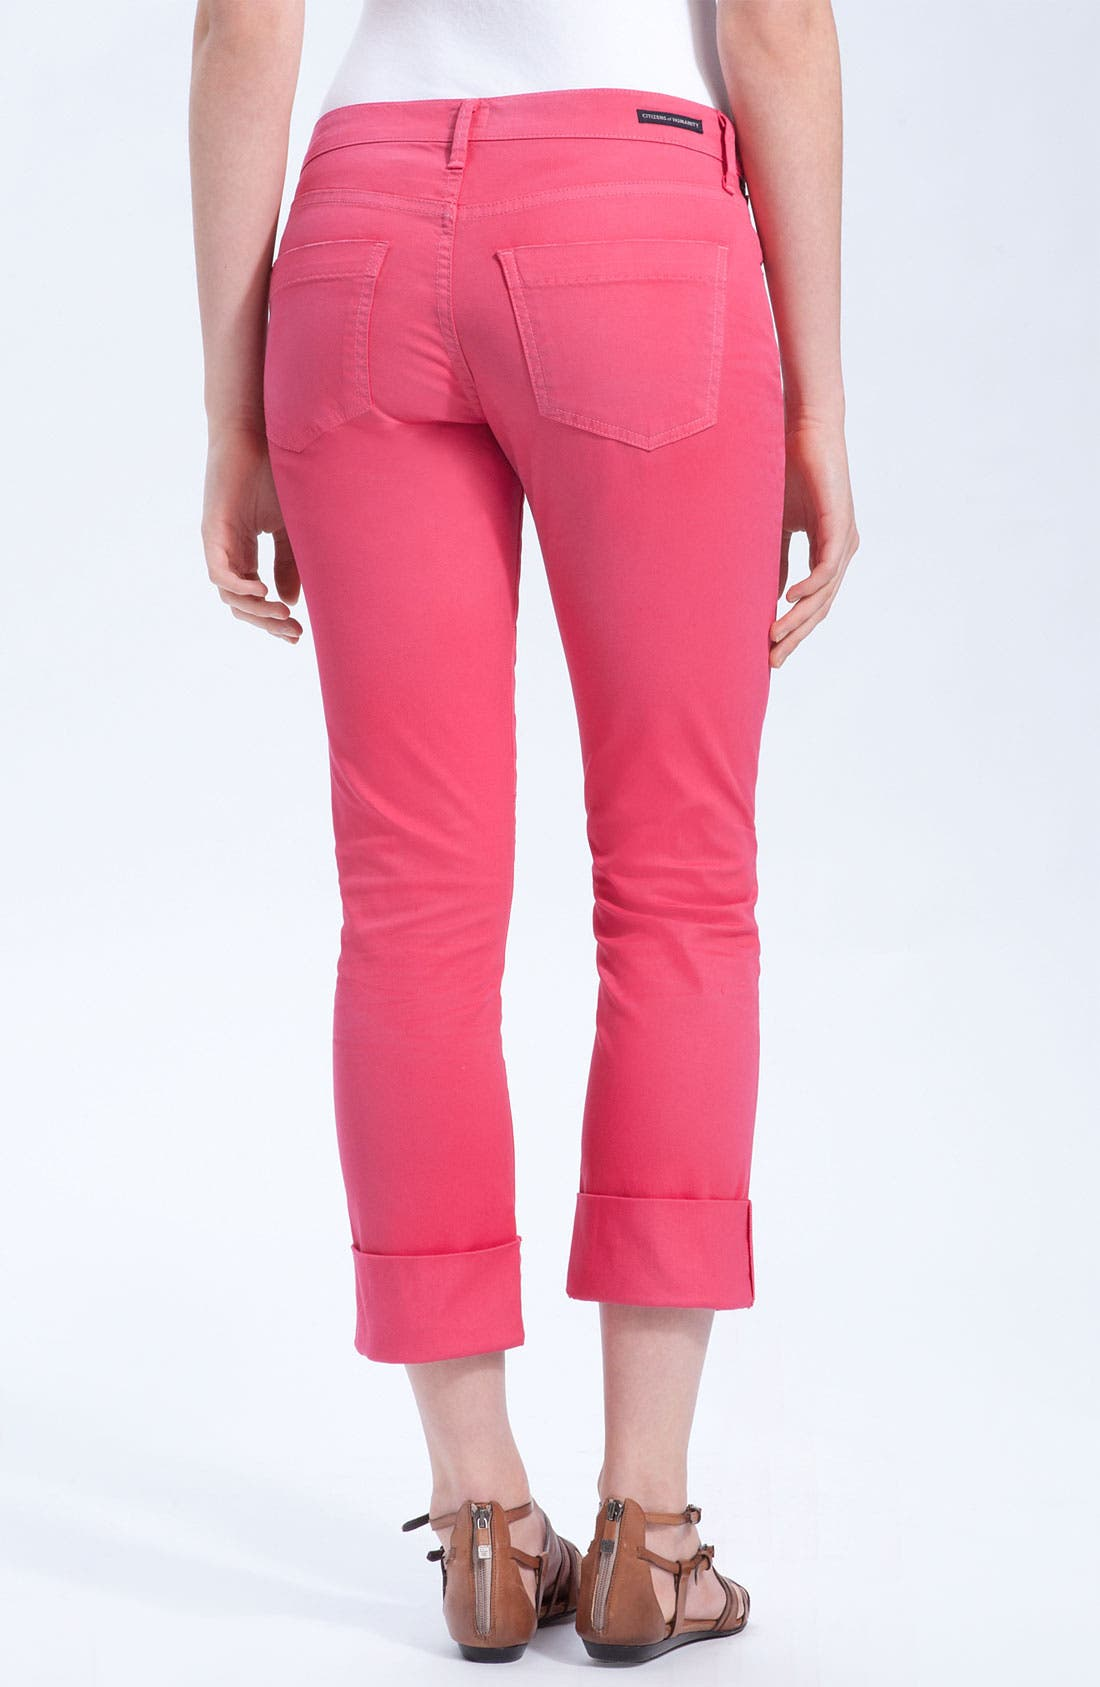 Main Image - Citizens of Humanity 'Dani' Colored Denim Skinny Leg Crop Jeans (Shocking Pink)